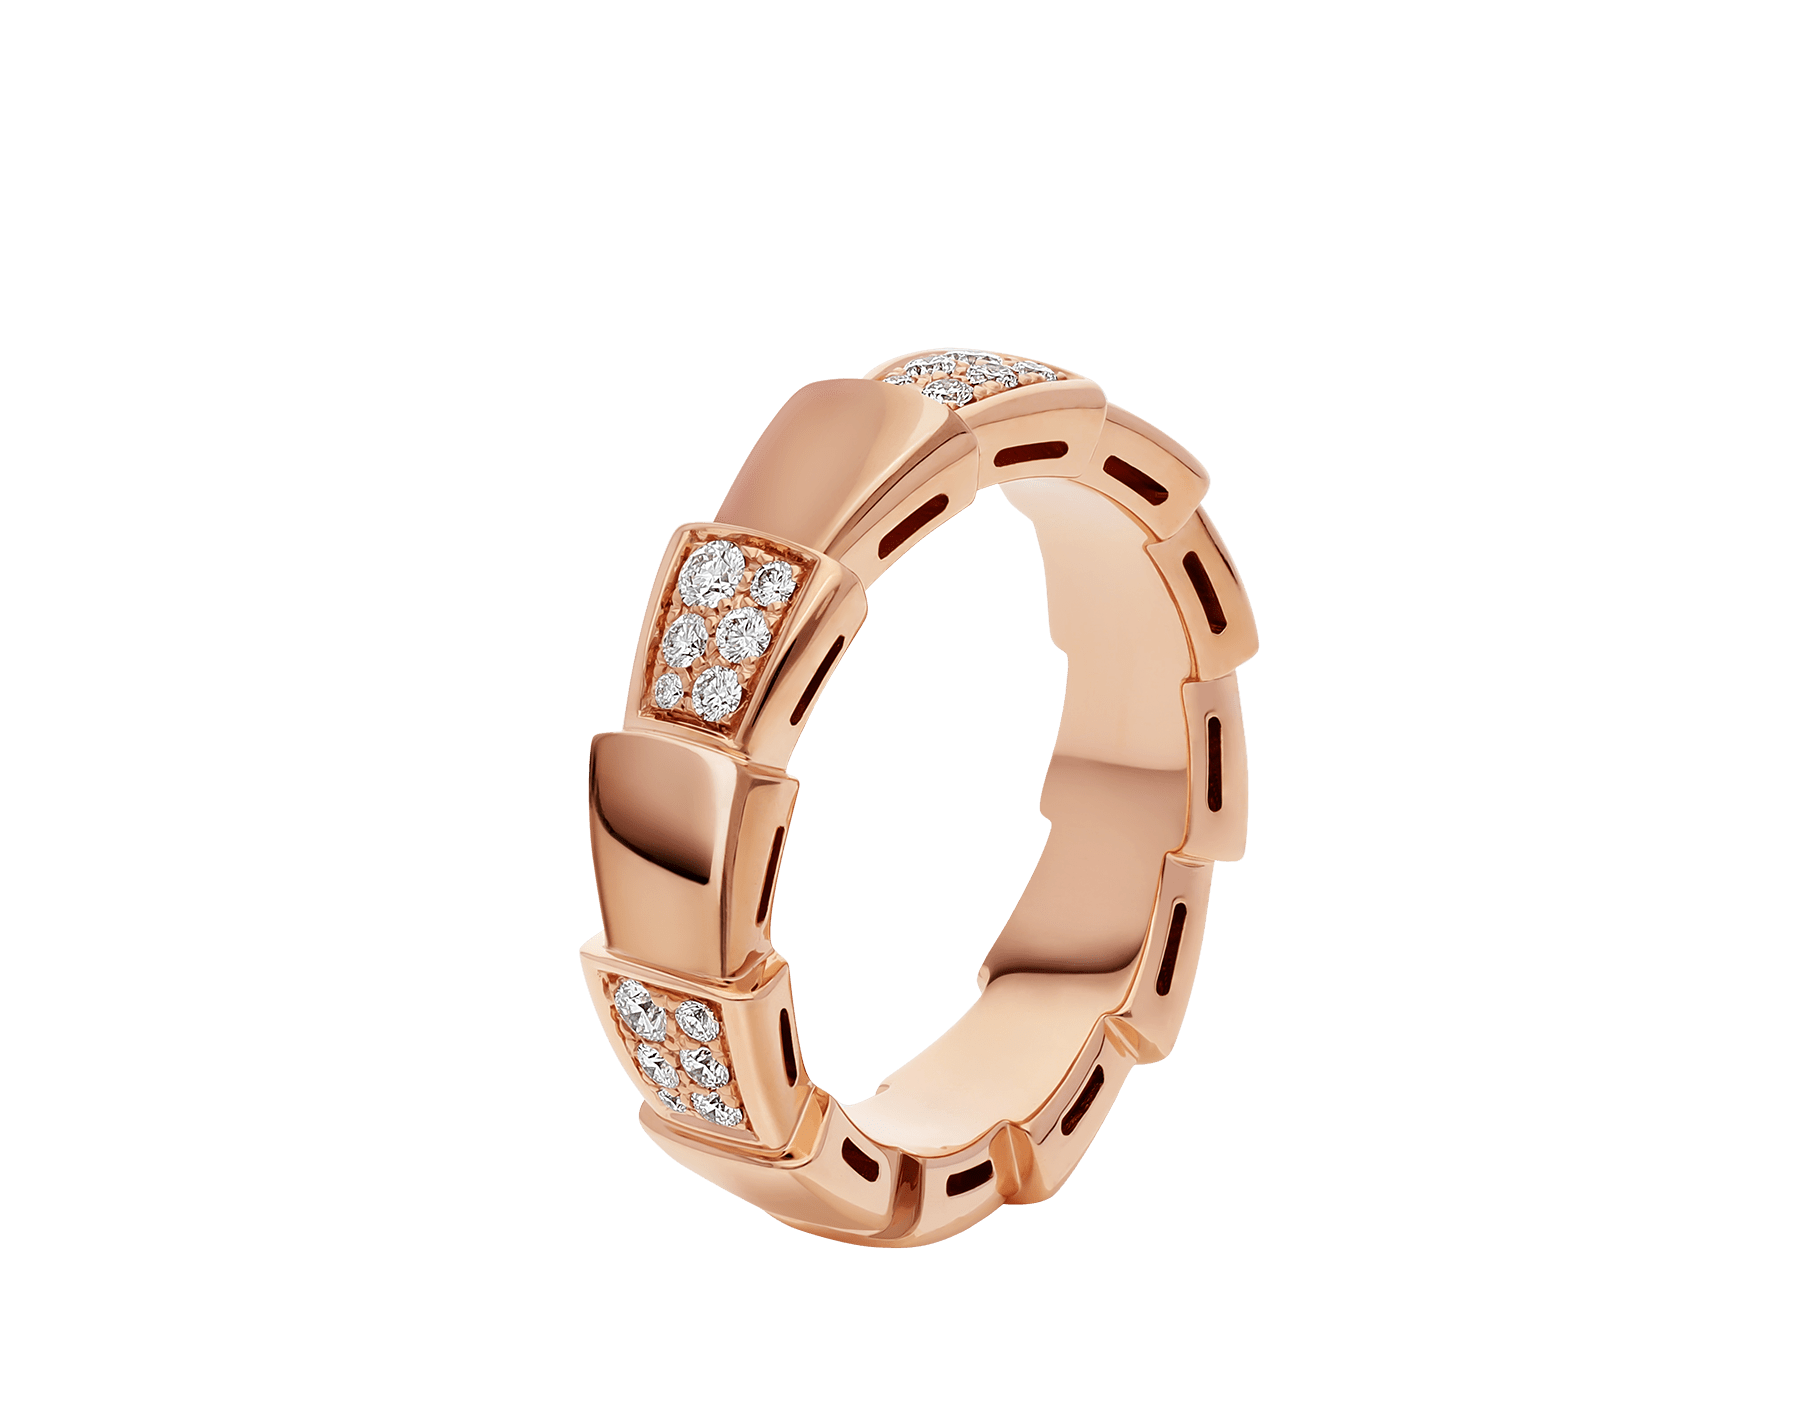 Serpenti band Ring in 18 kt rose gold with half pavé diamonds (0.43 ct). Width 6 mm AN857928 image 1